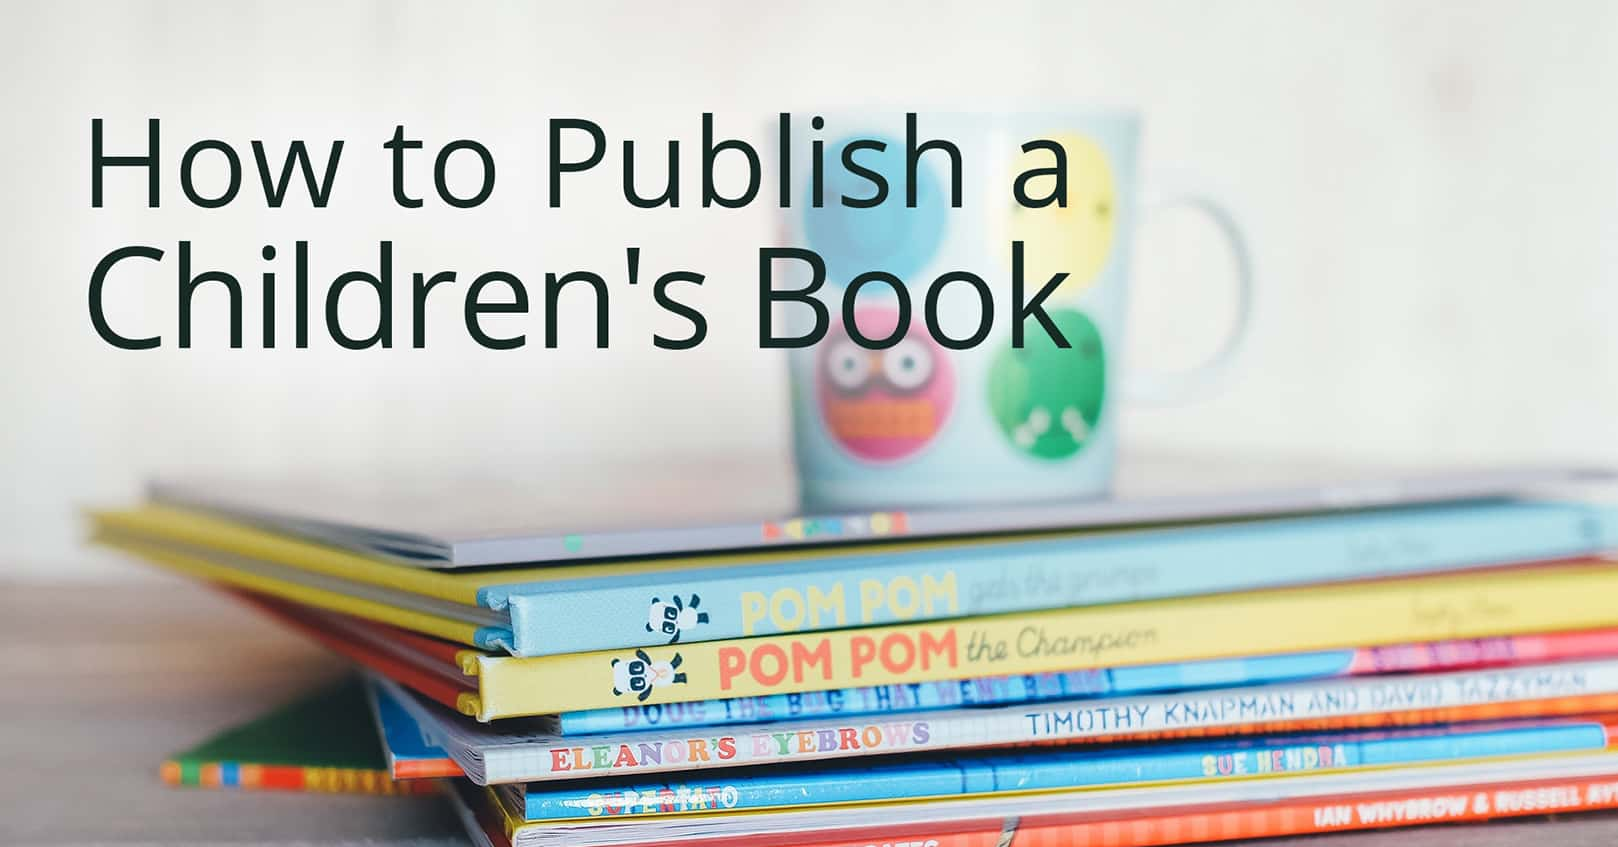 publish a children's book